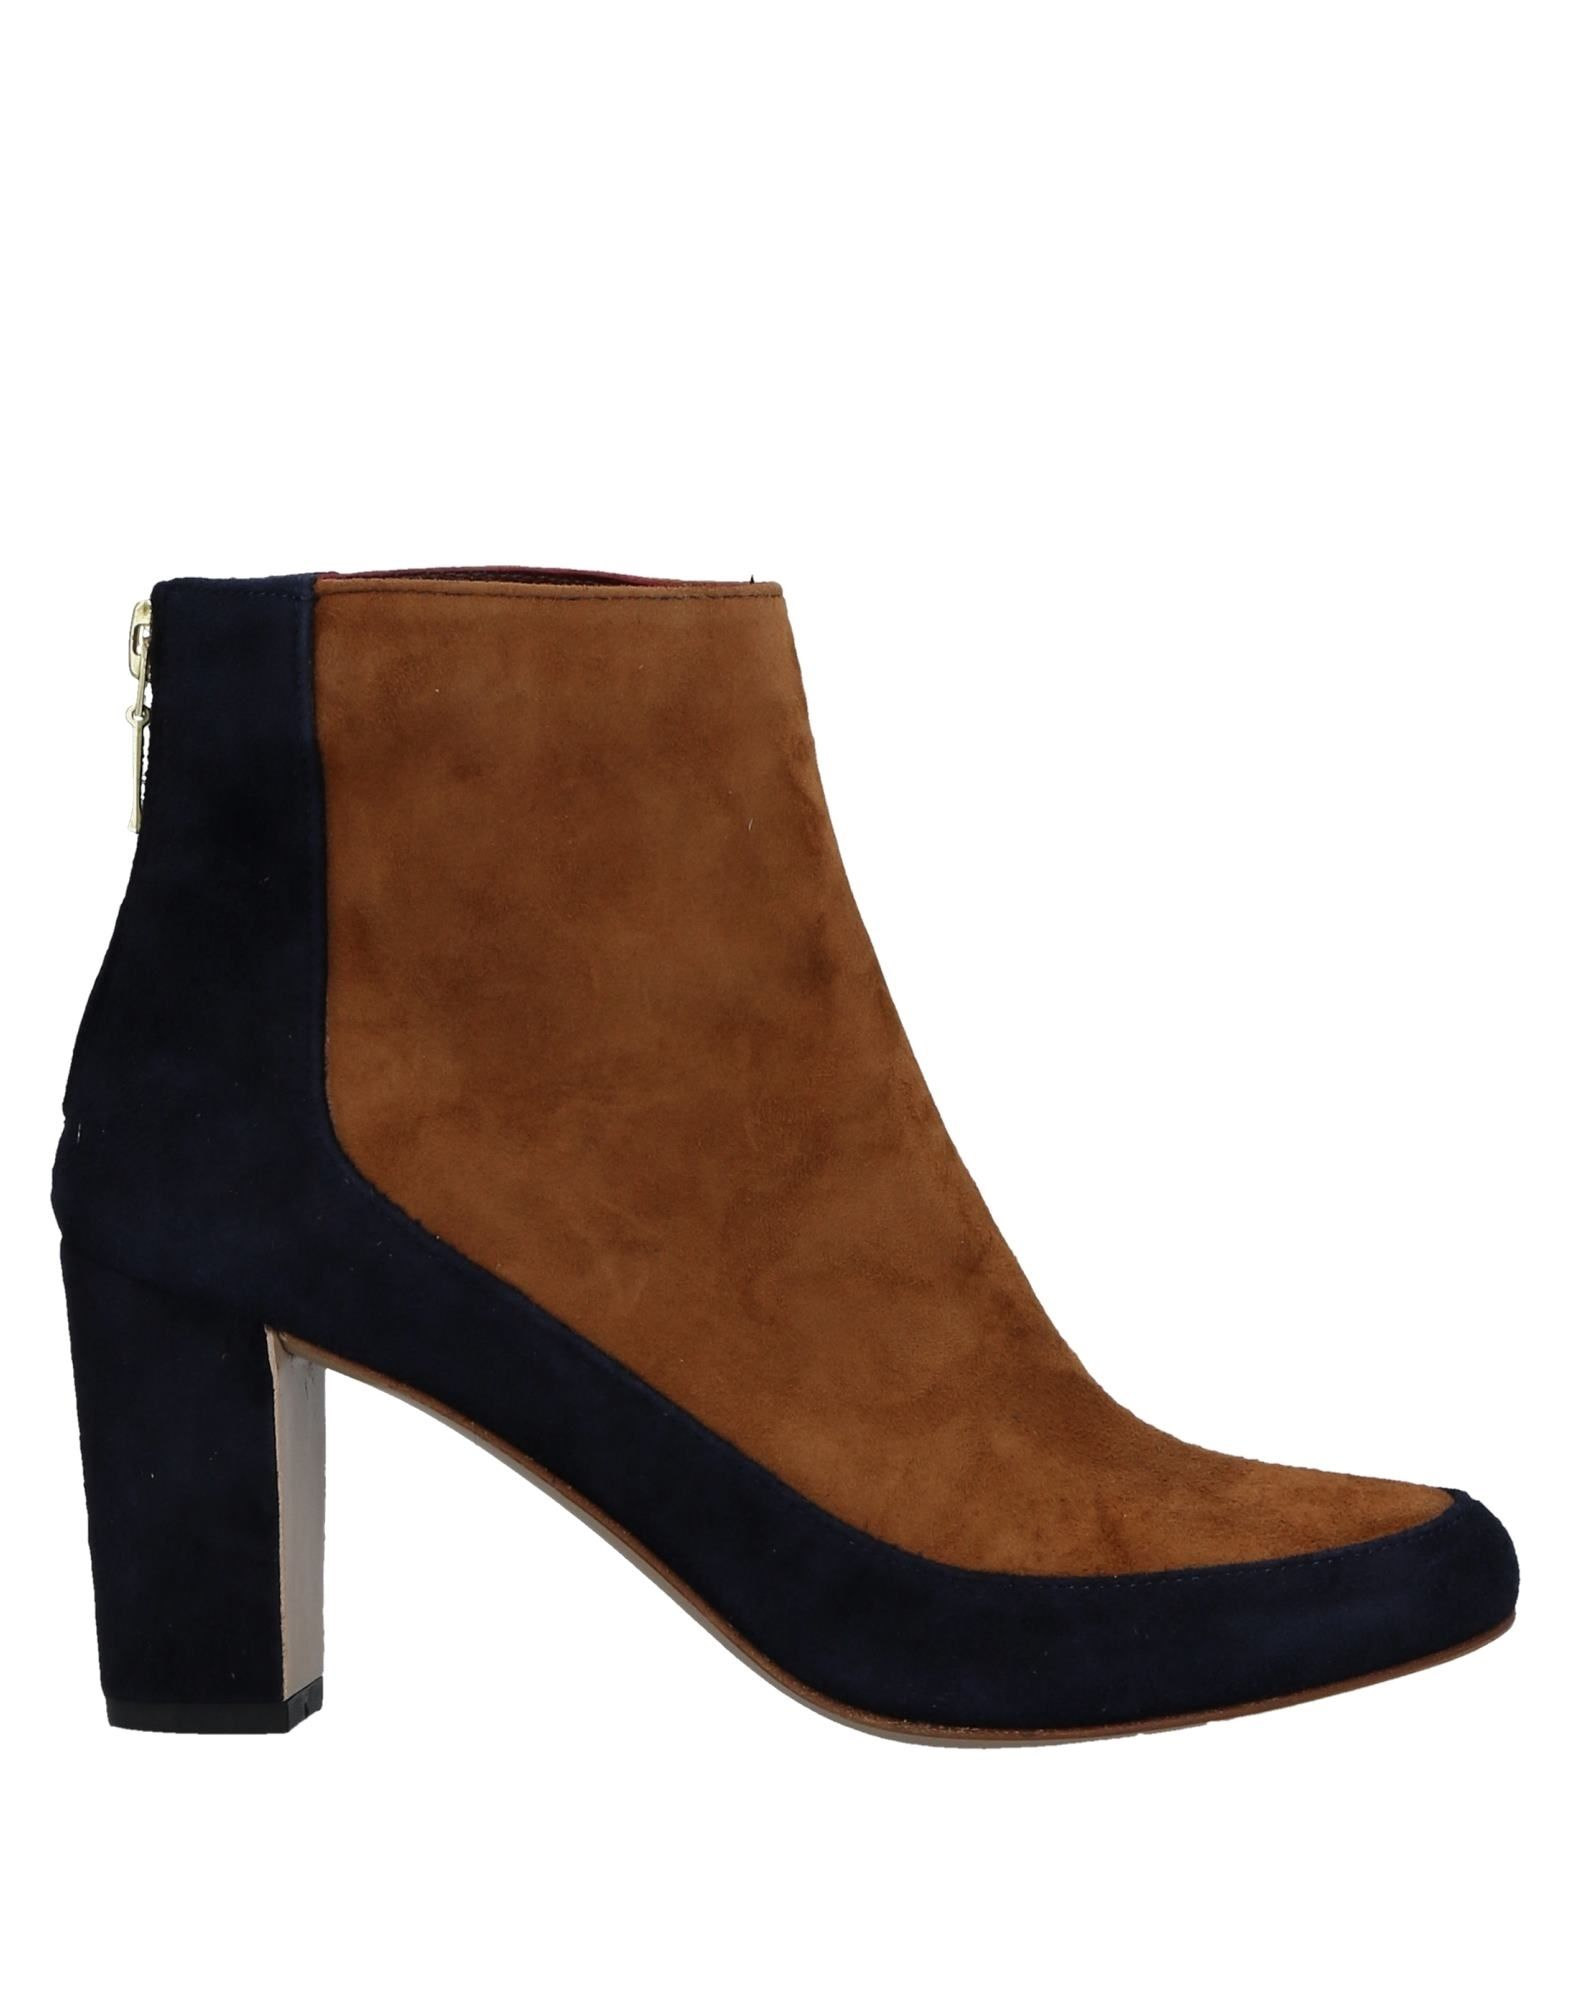 Bottine Avril Gau Femme - Bottines Avril Gau Camel Chaussures casual sauvages